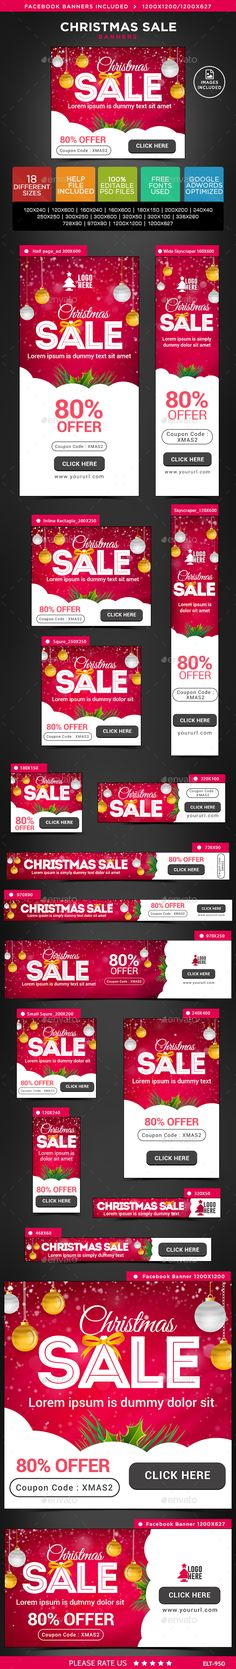 Christmas Sale Web Banners Template PSD #design Download…